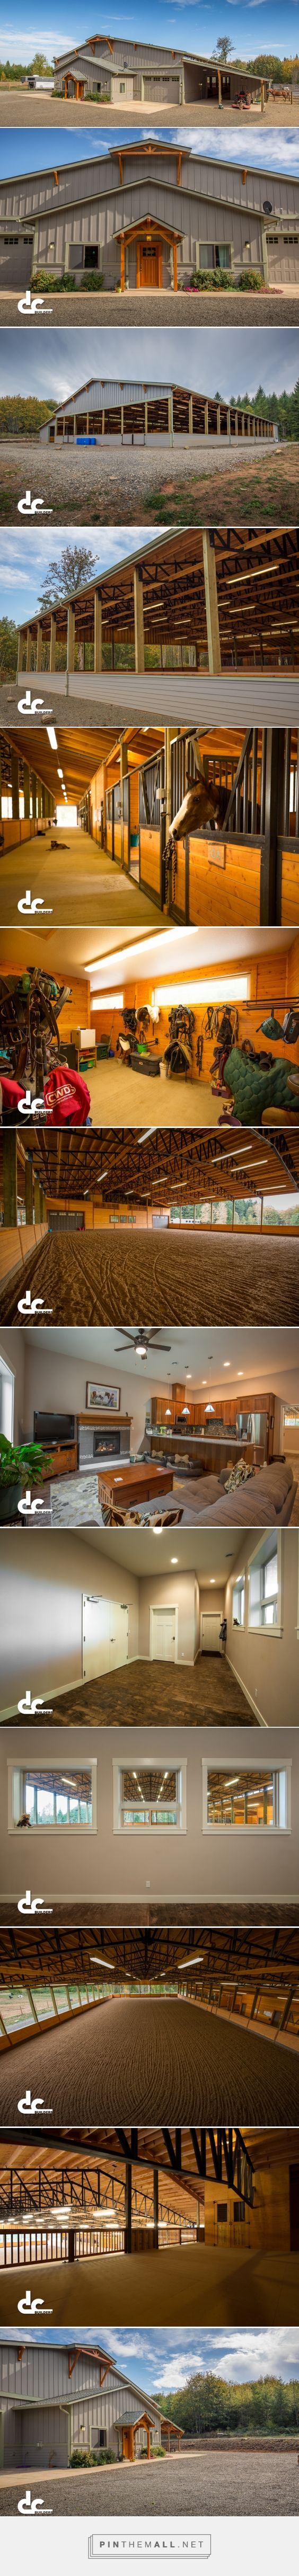 Covered Riding Arena With Apartment In Oregon City, OR - DC Builders - created via https://pinthemall.net